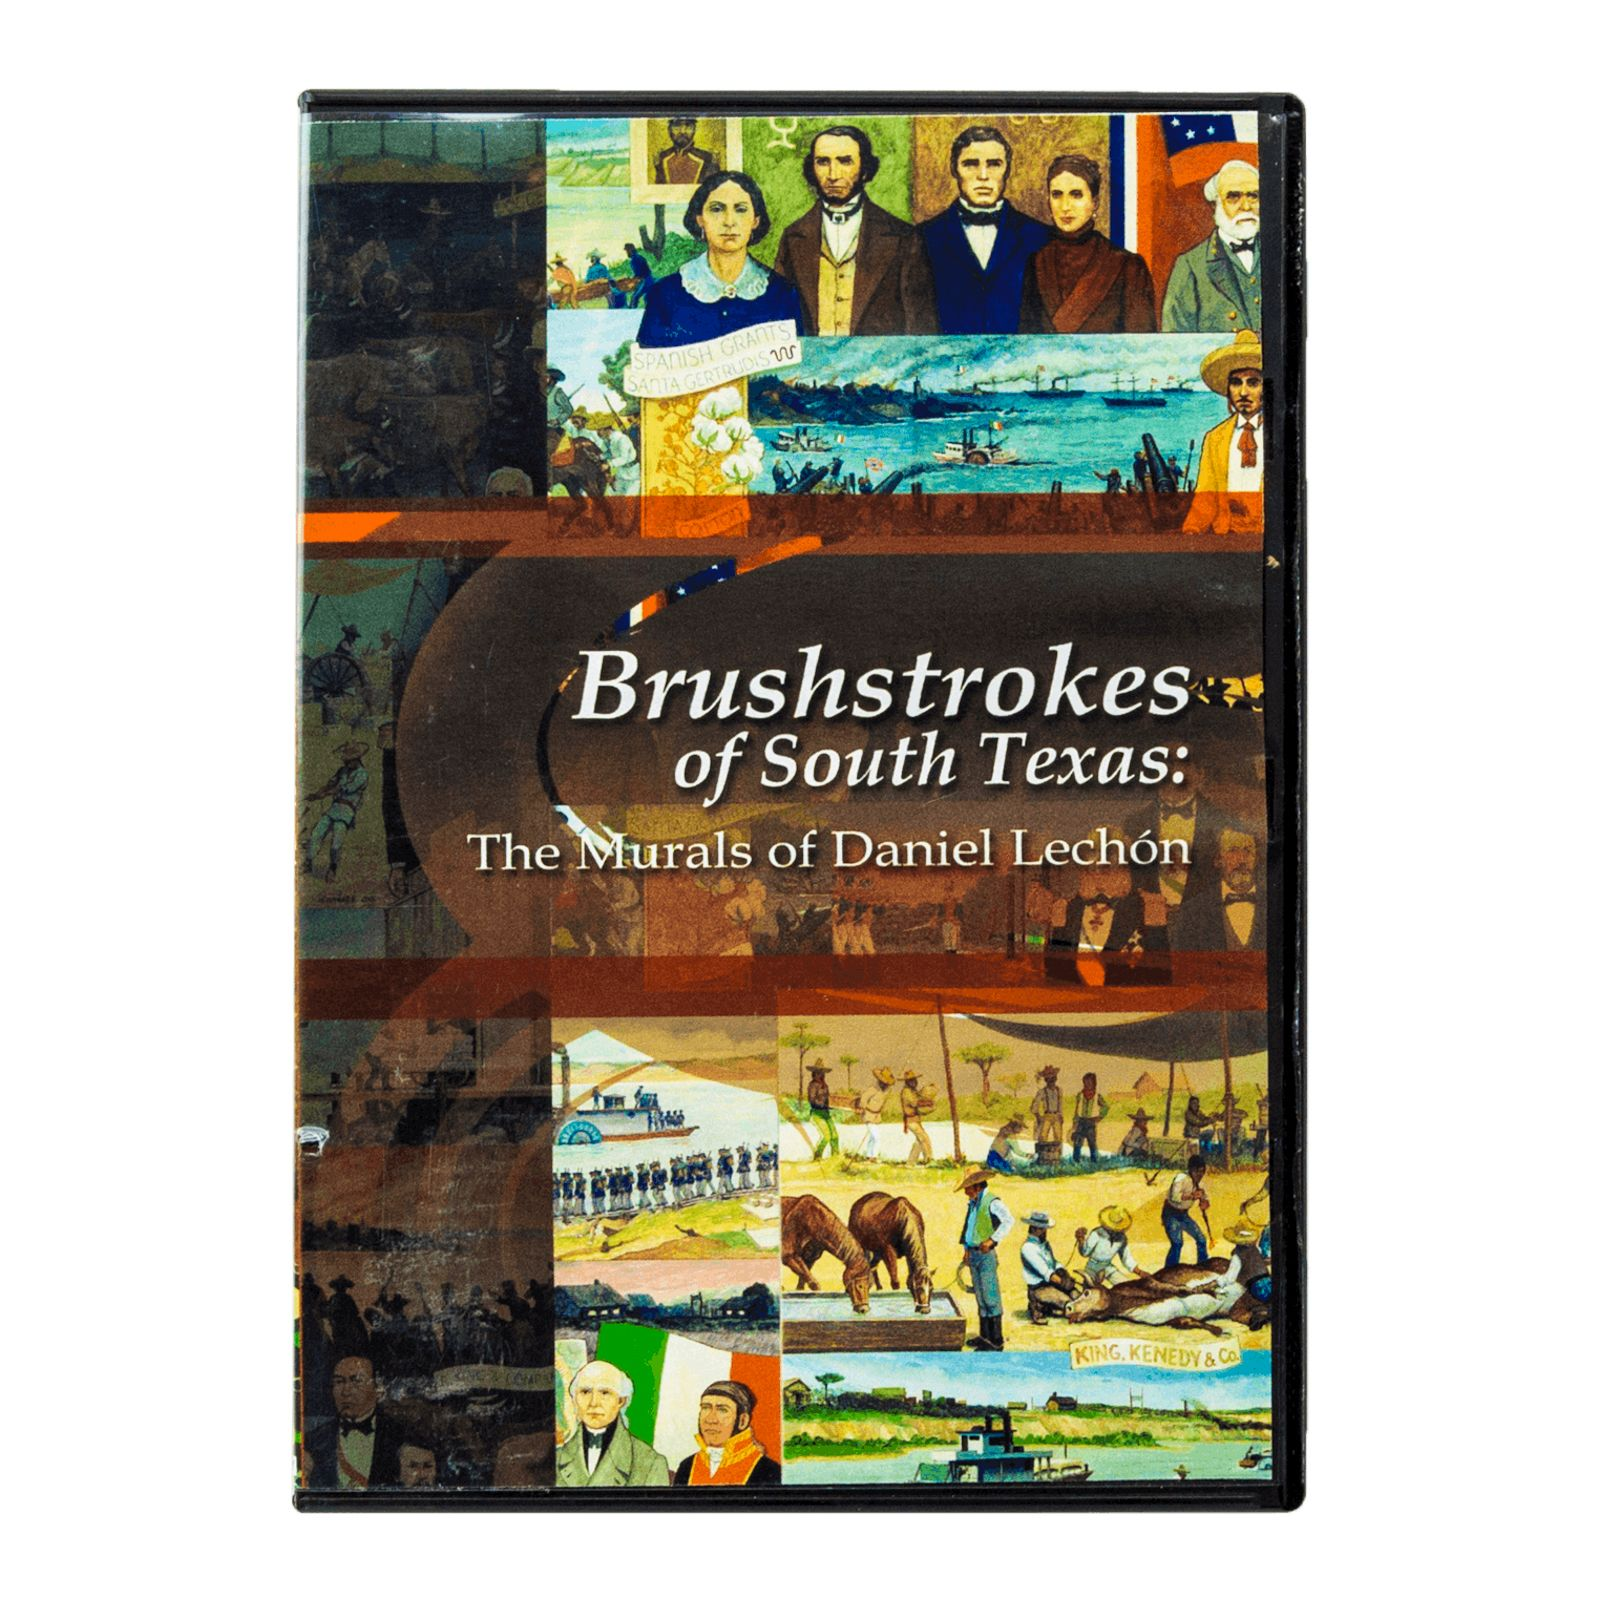 Brushstrokes of South Texas: The Murals of Daniel Lechon Documentary DVD